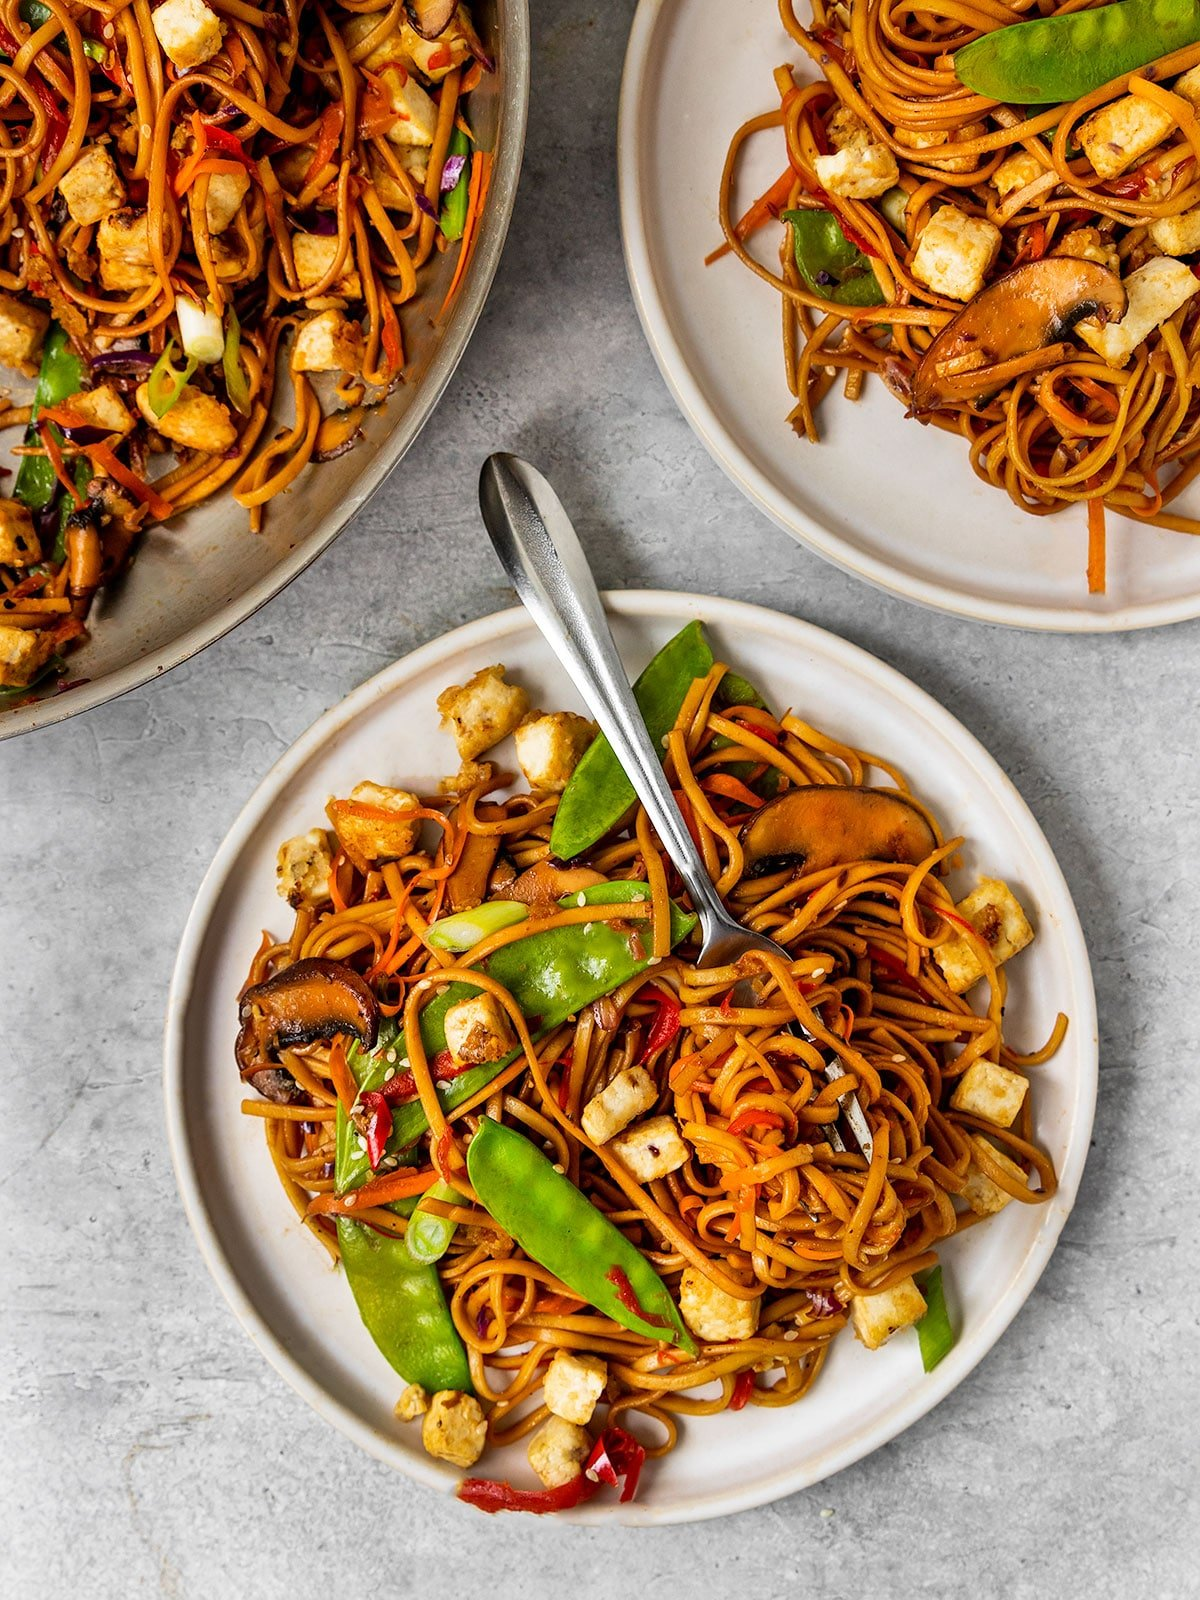 three plates of vegetable lo mein noodles with veggies and tofu